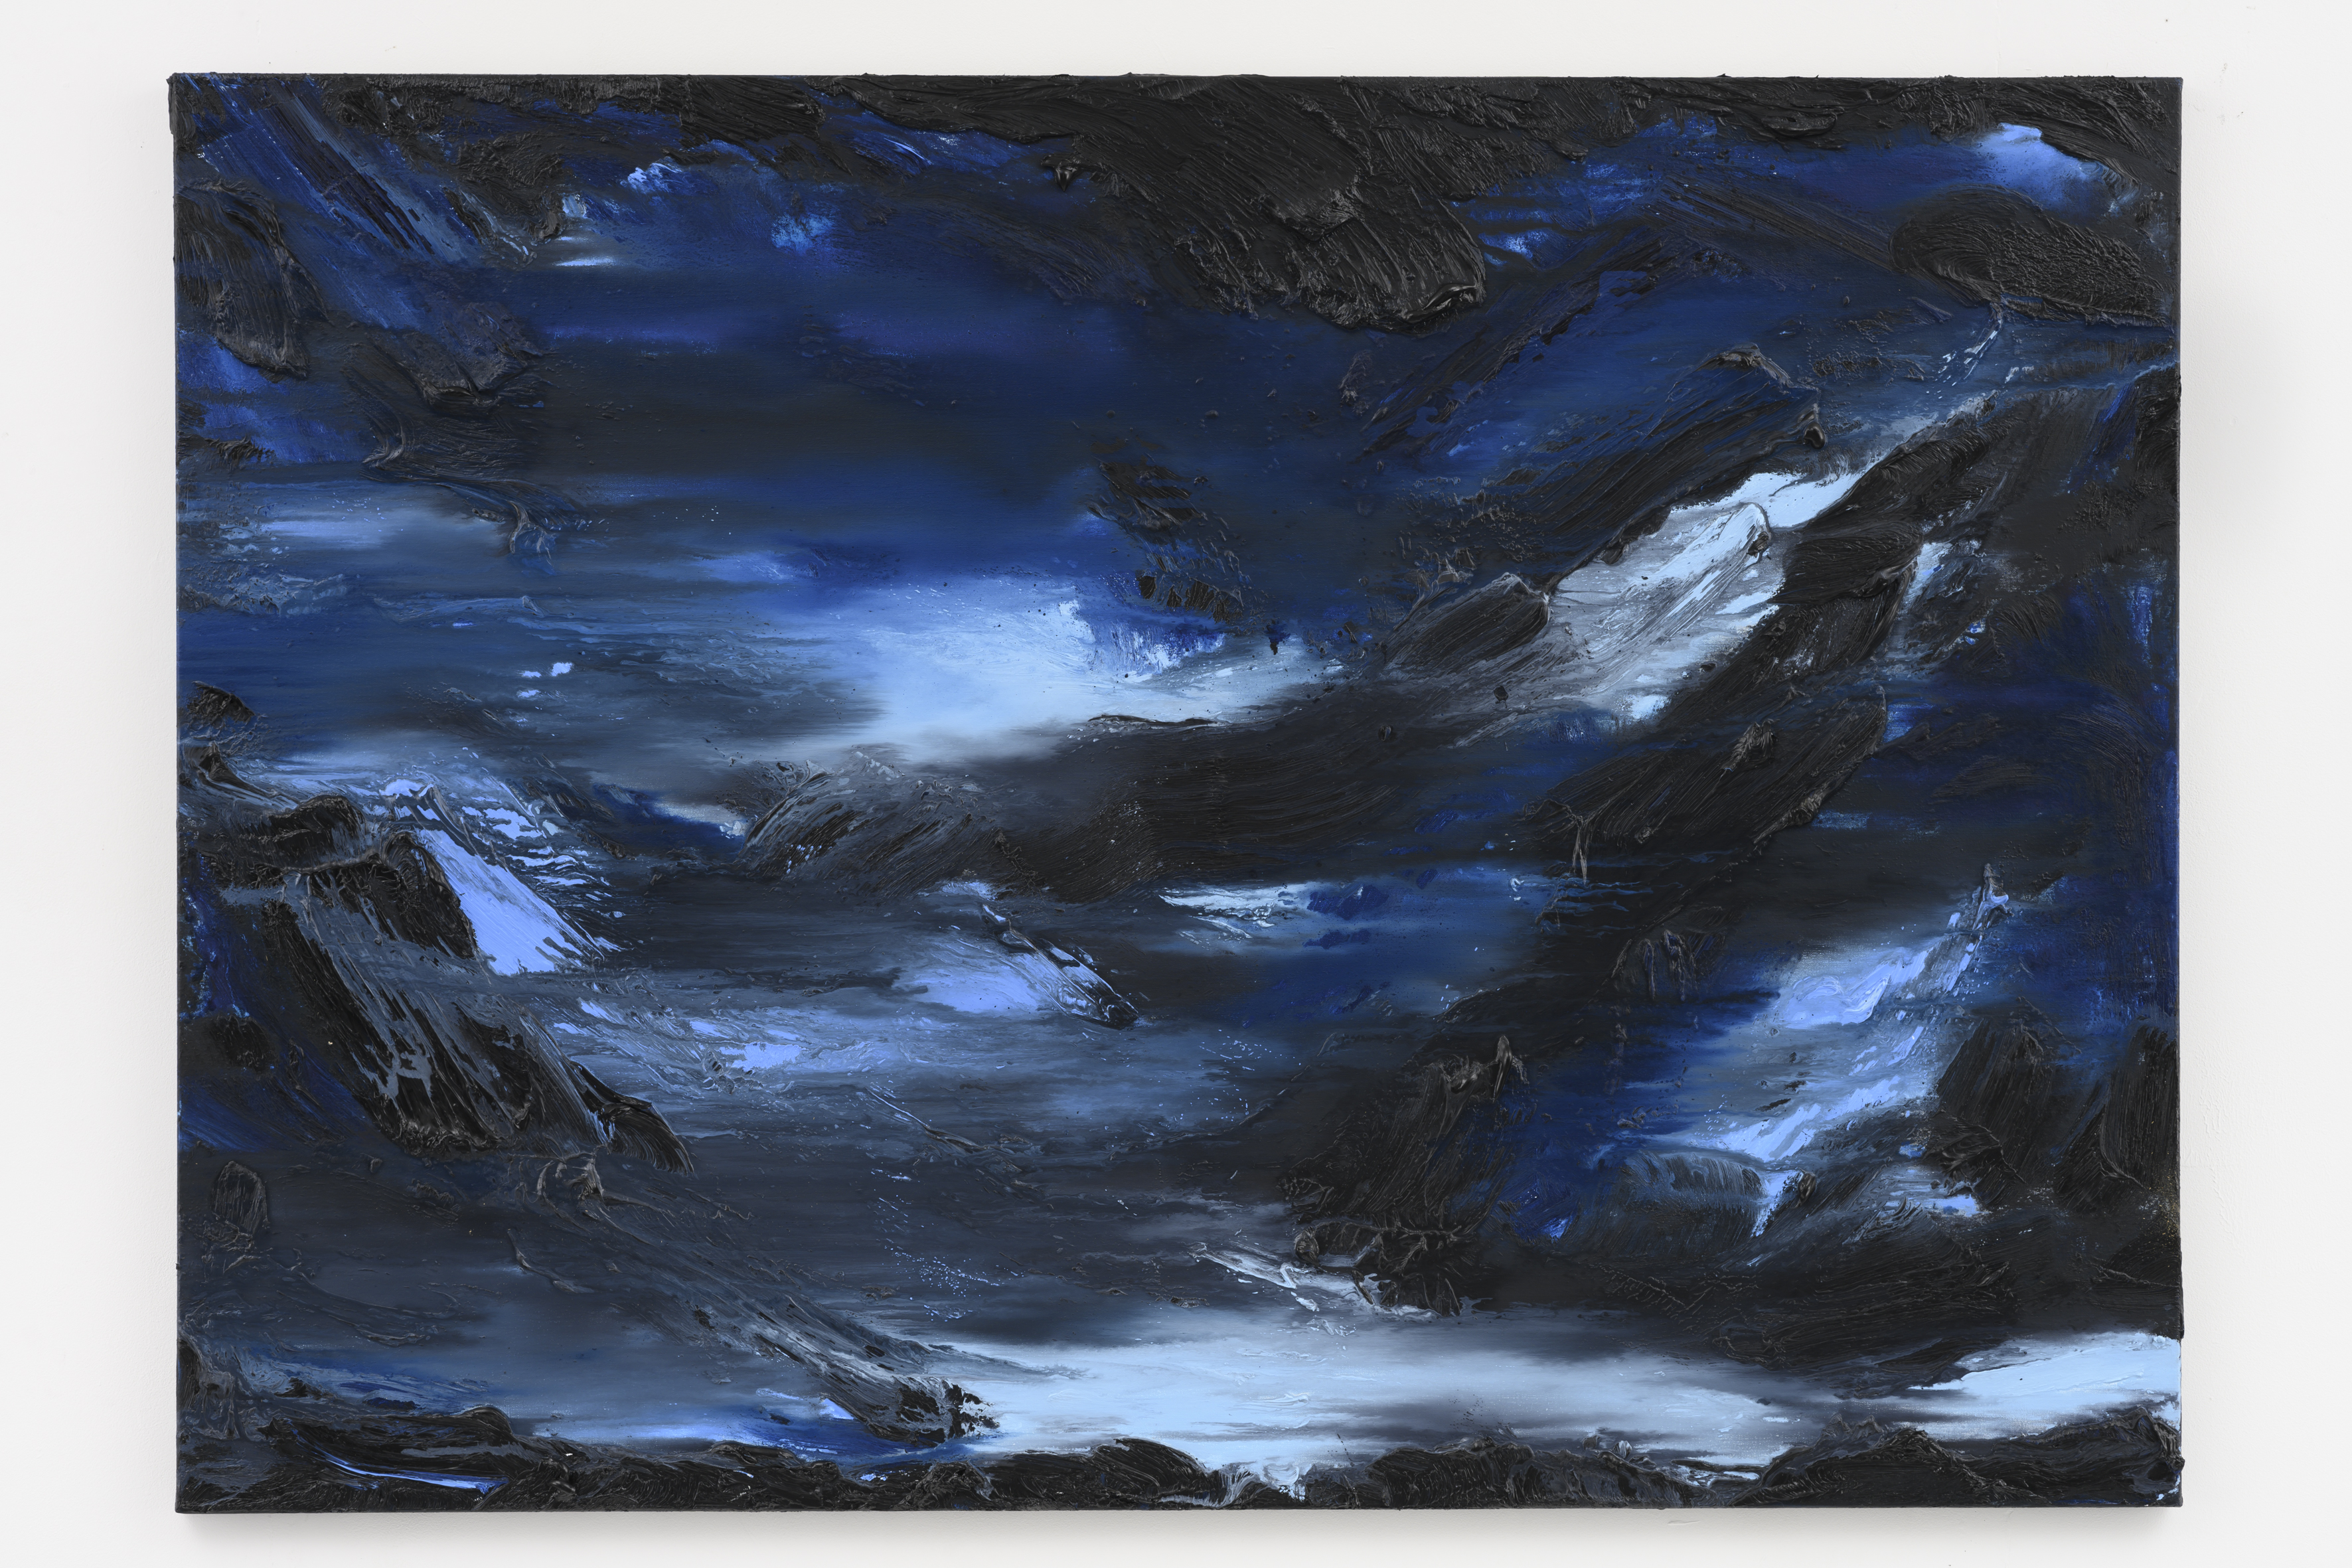 """""""Into the Blue I"""", 100 x 140 cm. oil on linen 2019 (Norway)"""